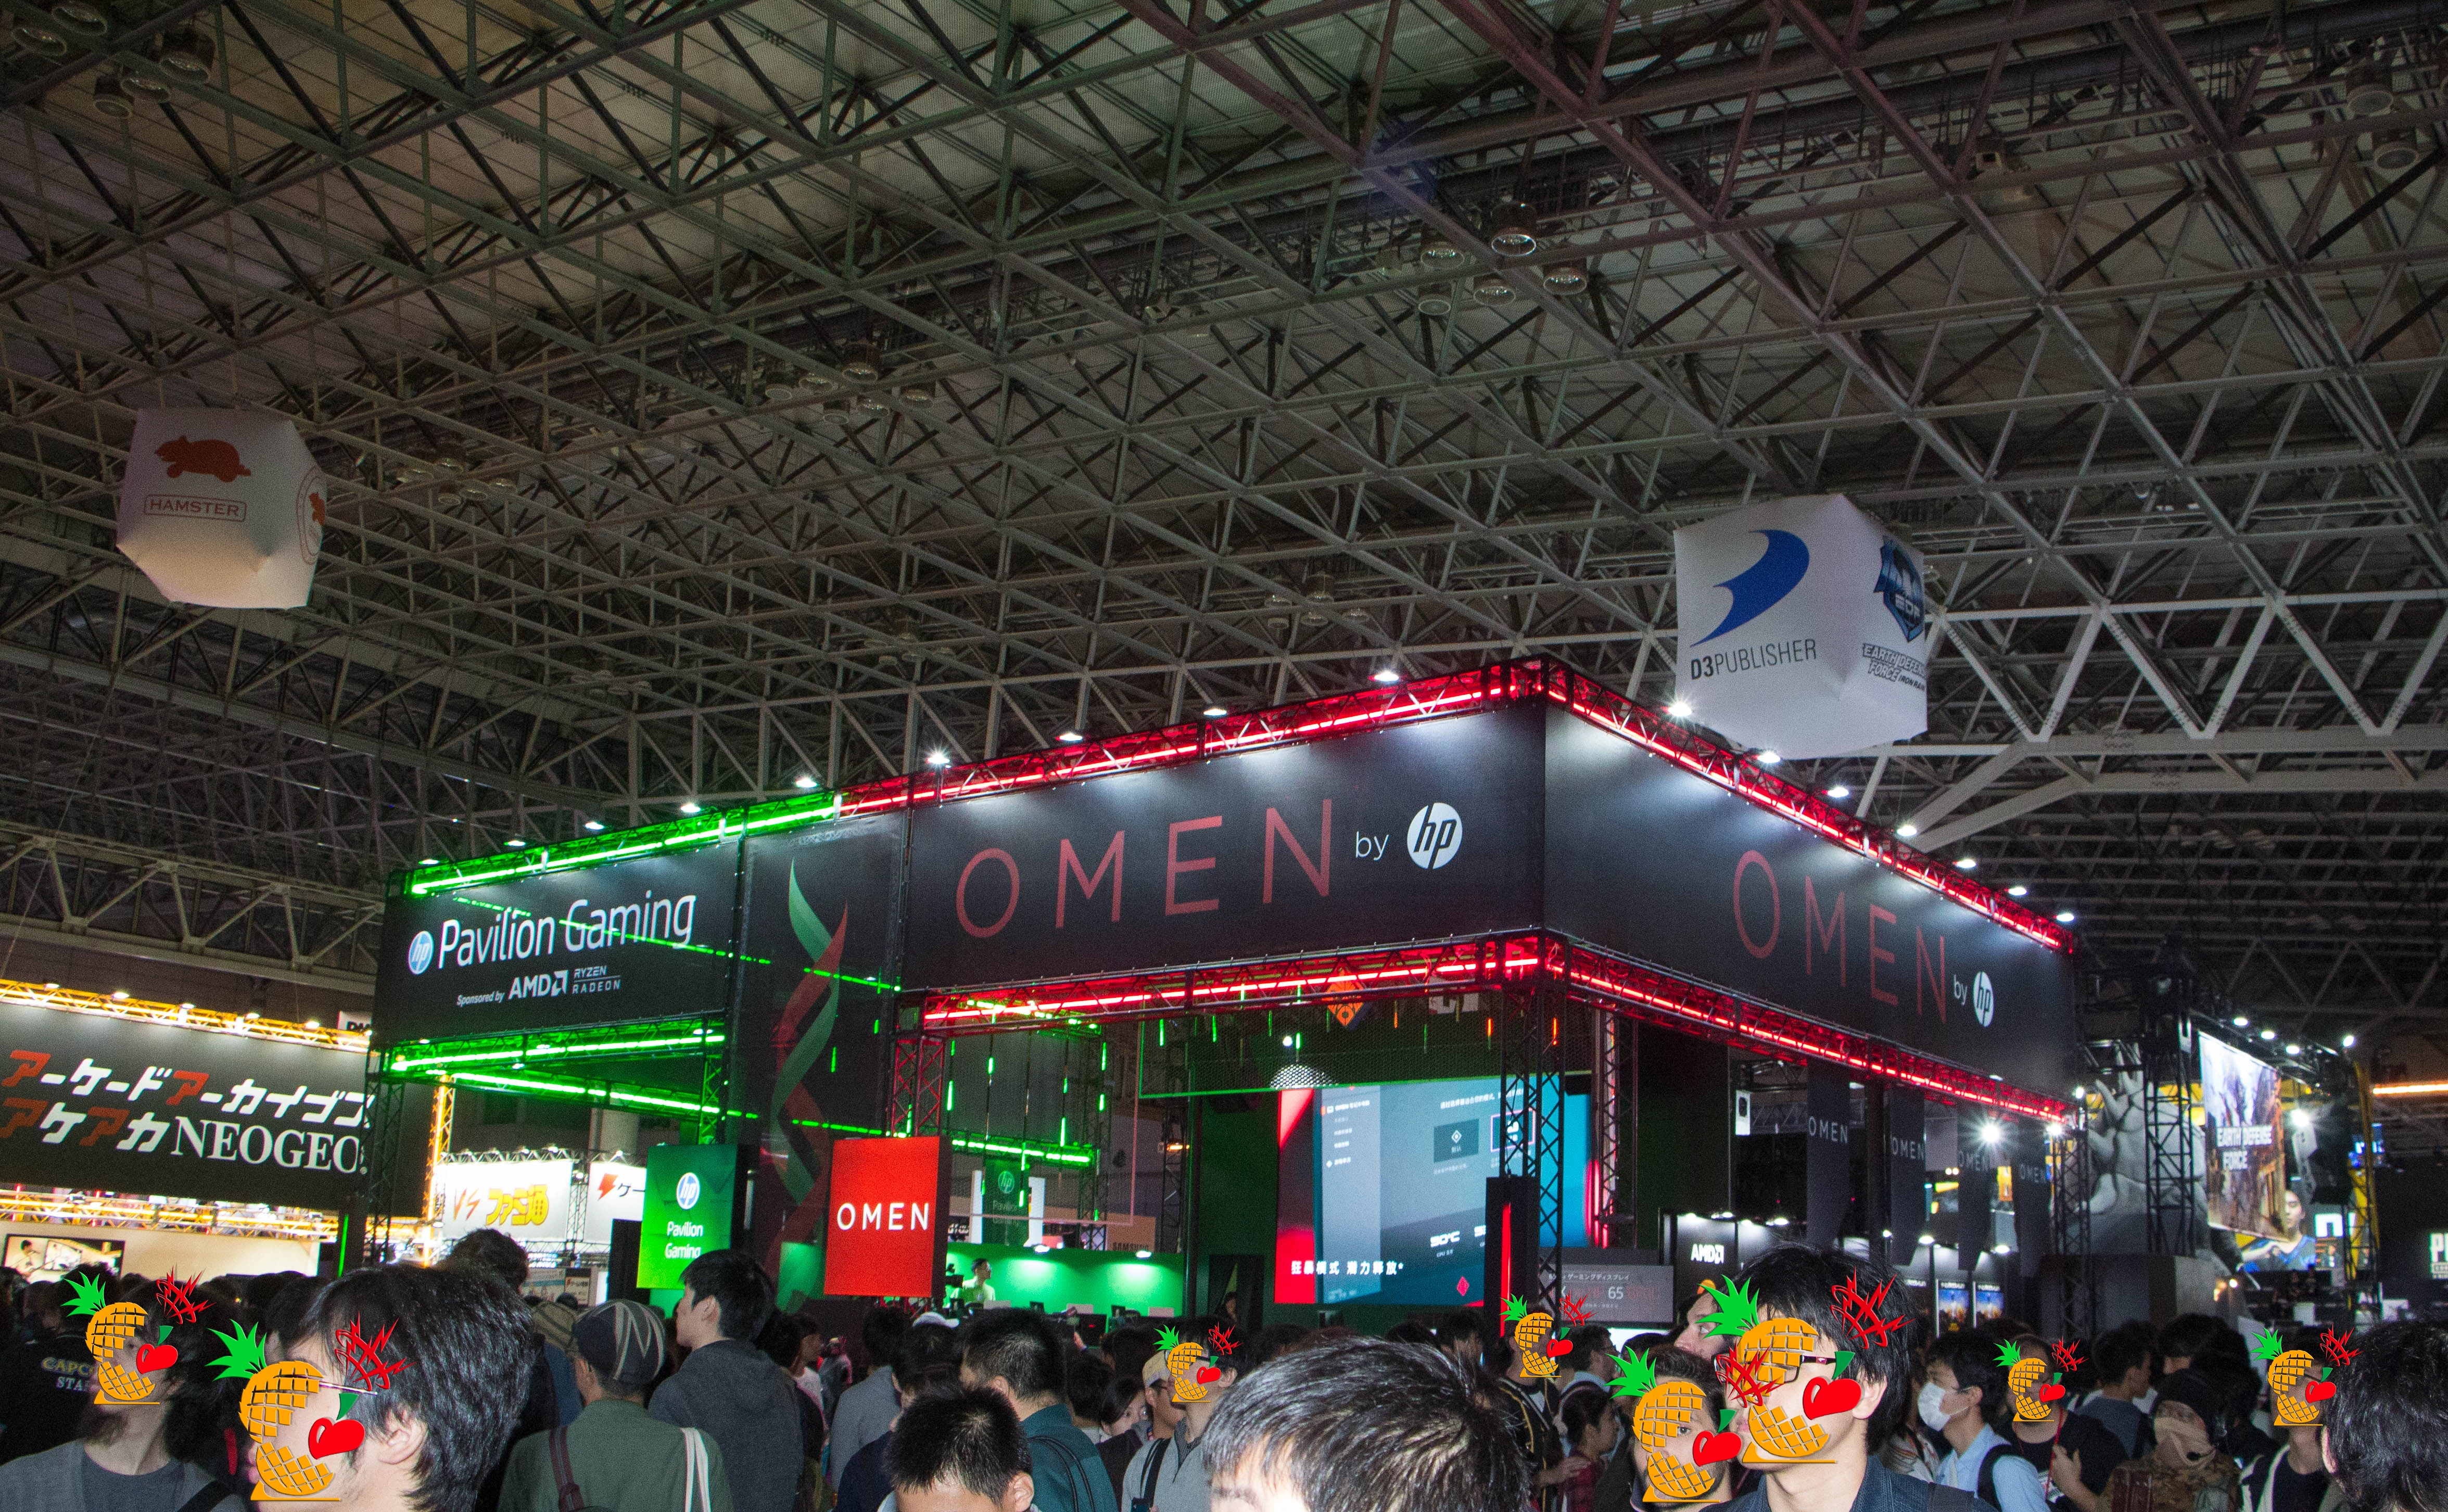 OMEN by HP/Pavilion Gaming ブース @ 日本 HP